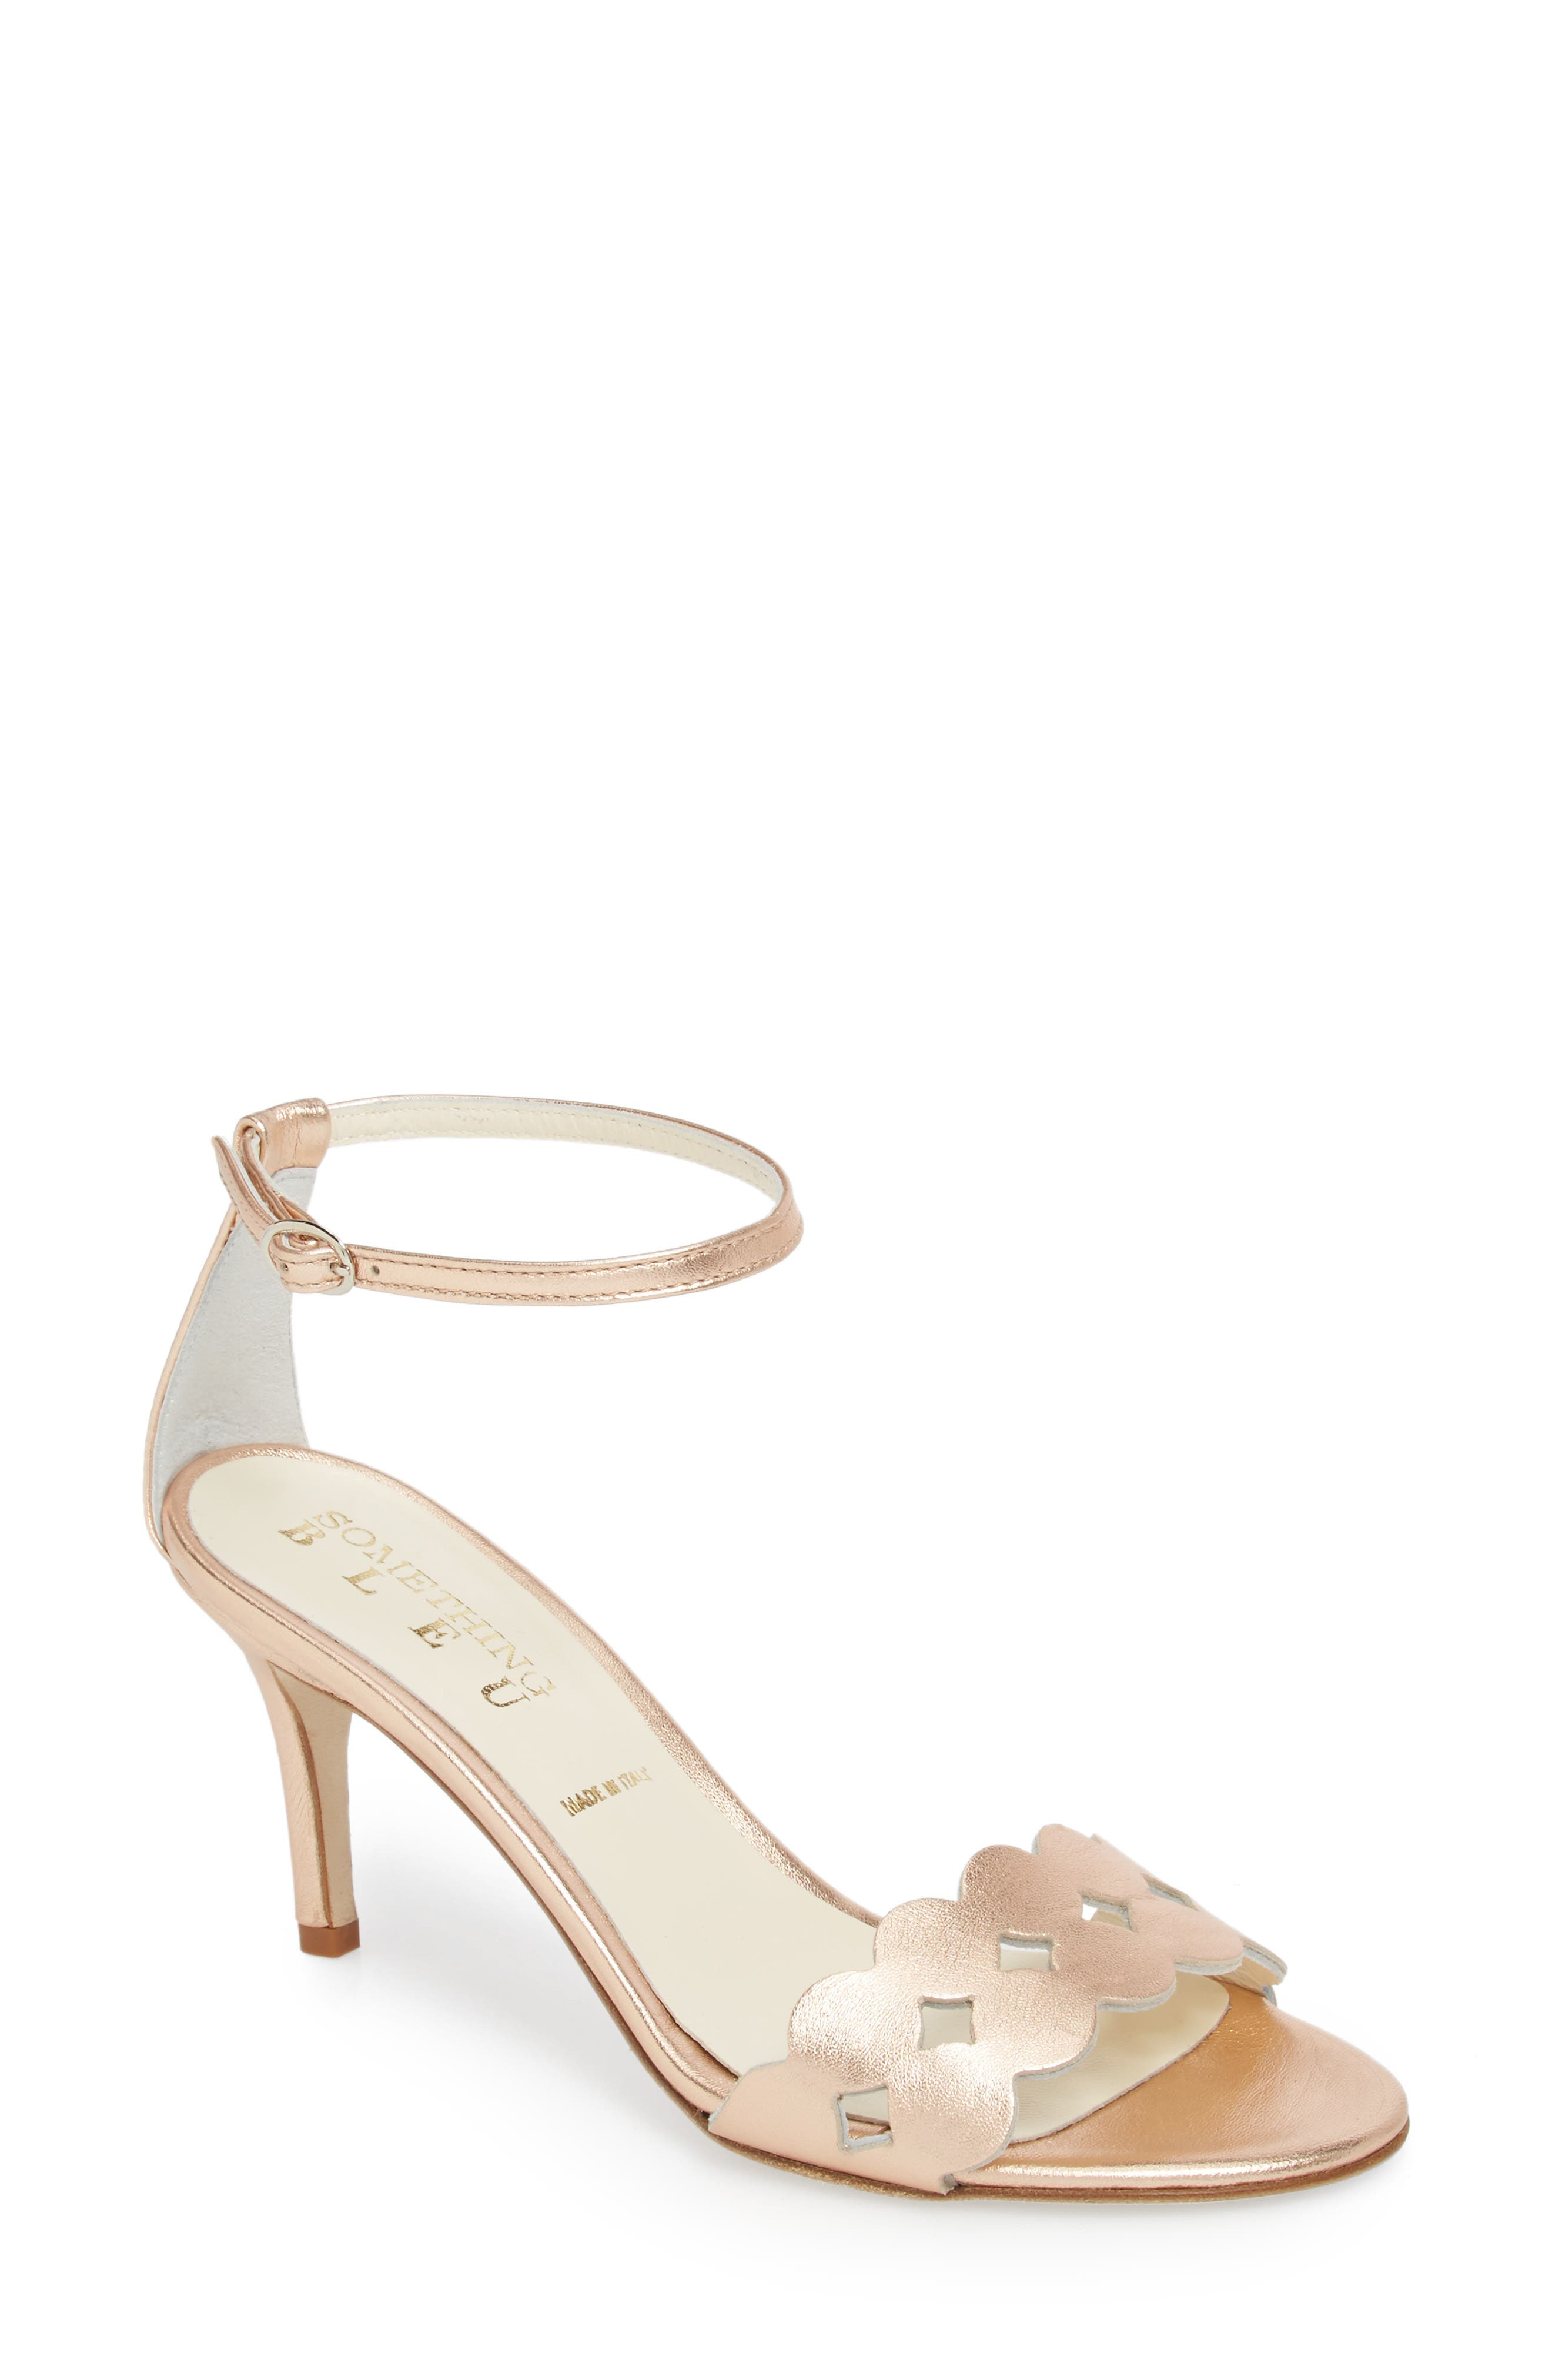 Gina Ankle Strap Sandal,                             Main thumbnail 1, color,                             Rose Gold Metallics